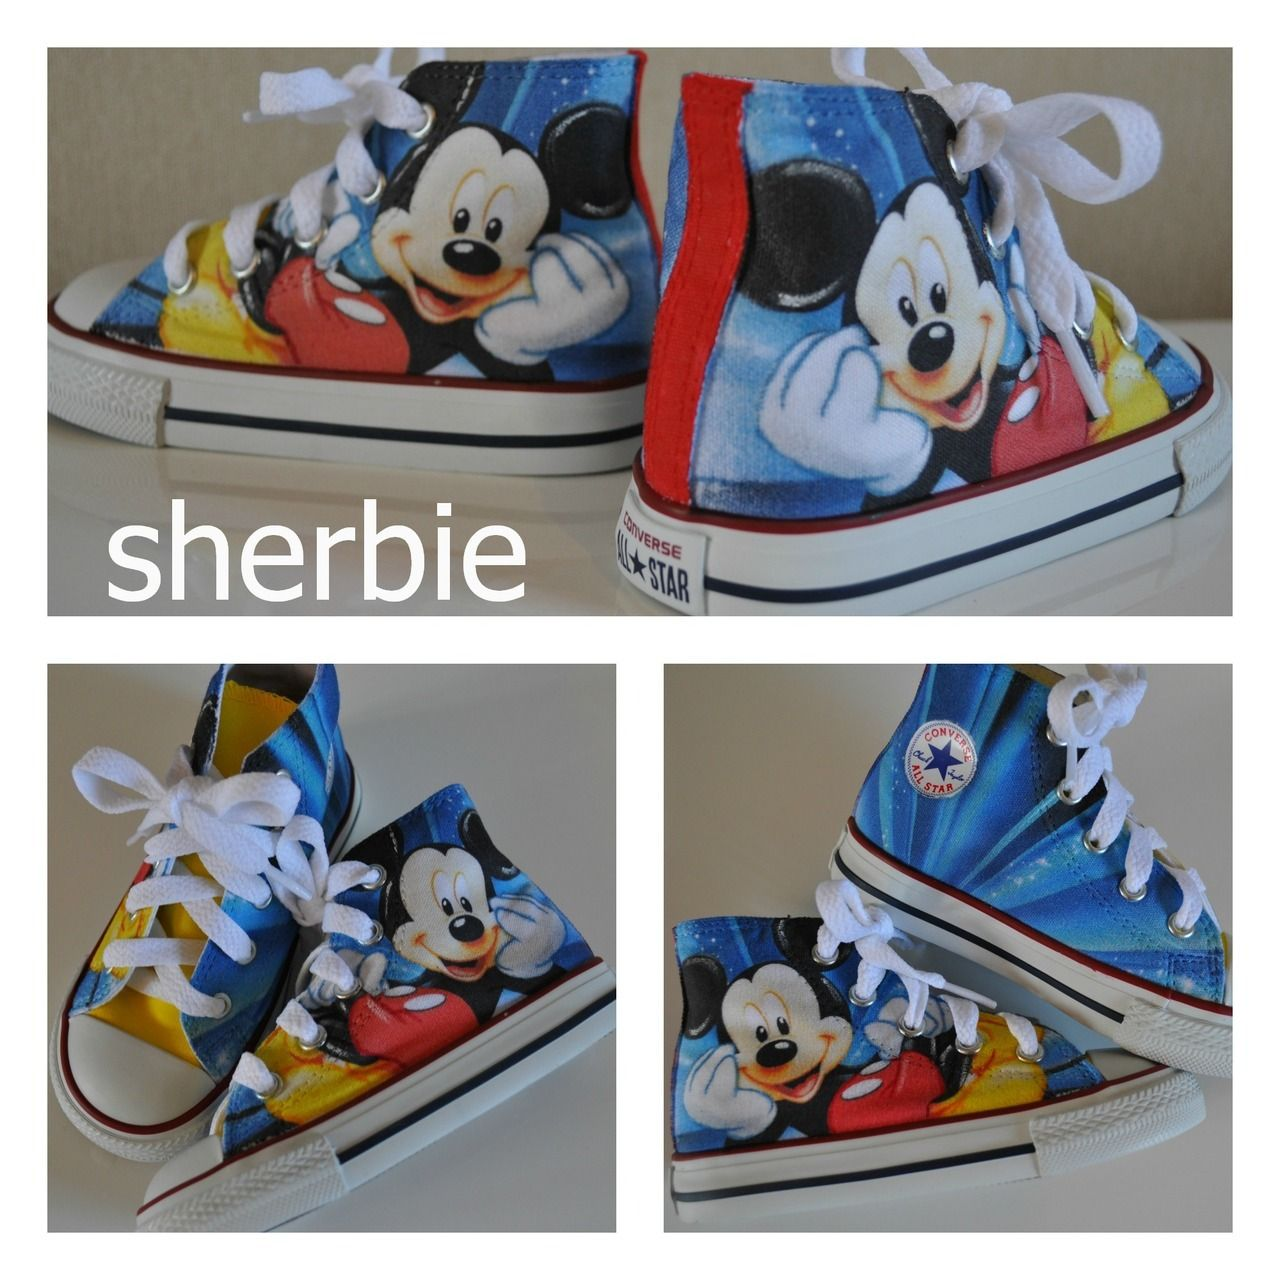 b414632b0598 Sherbie.co.uk - Mickey Mouse custom Converse shoes